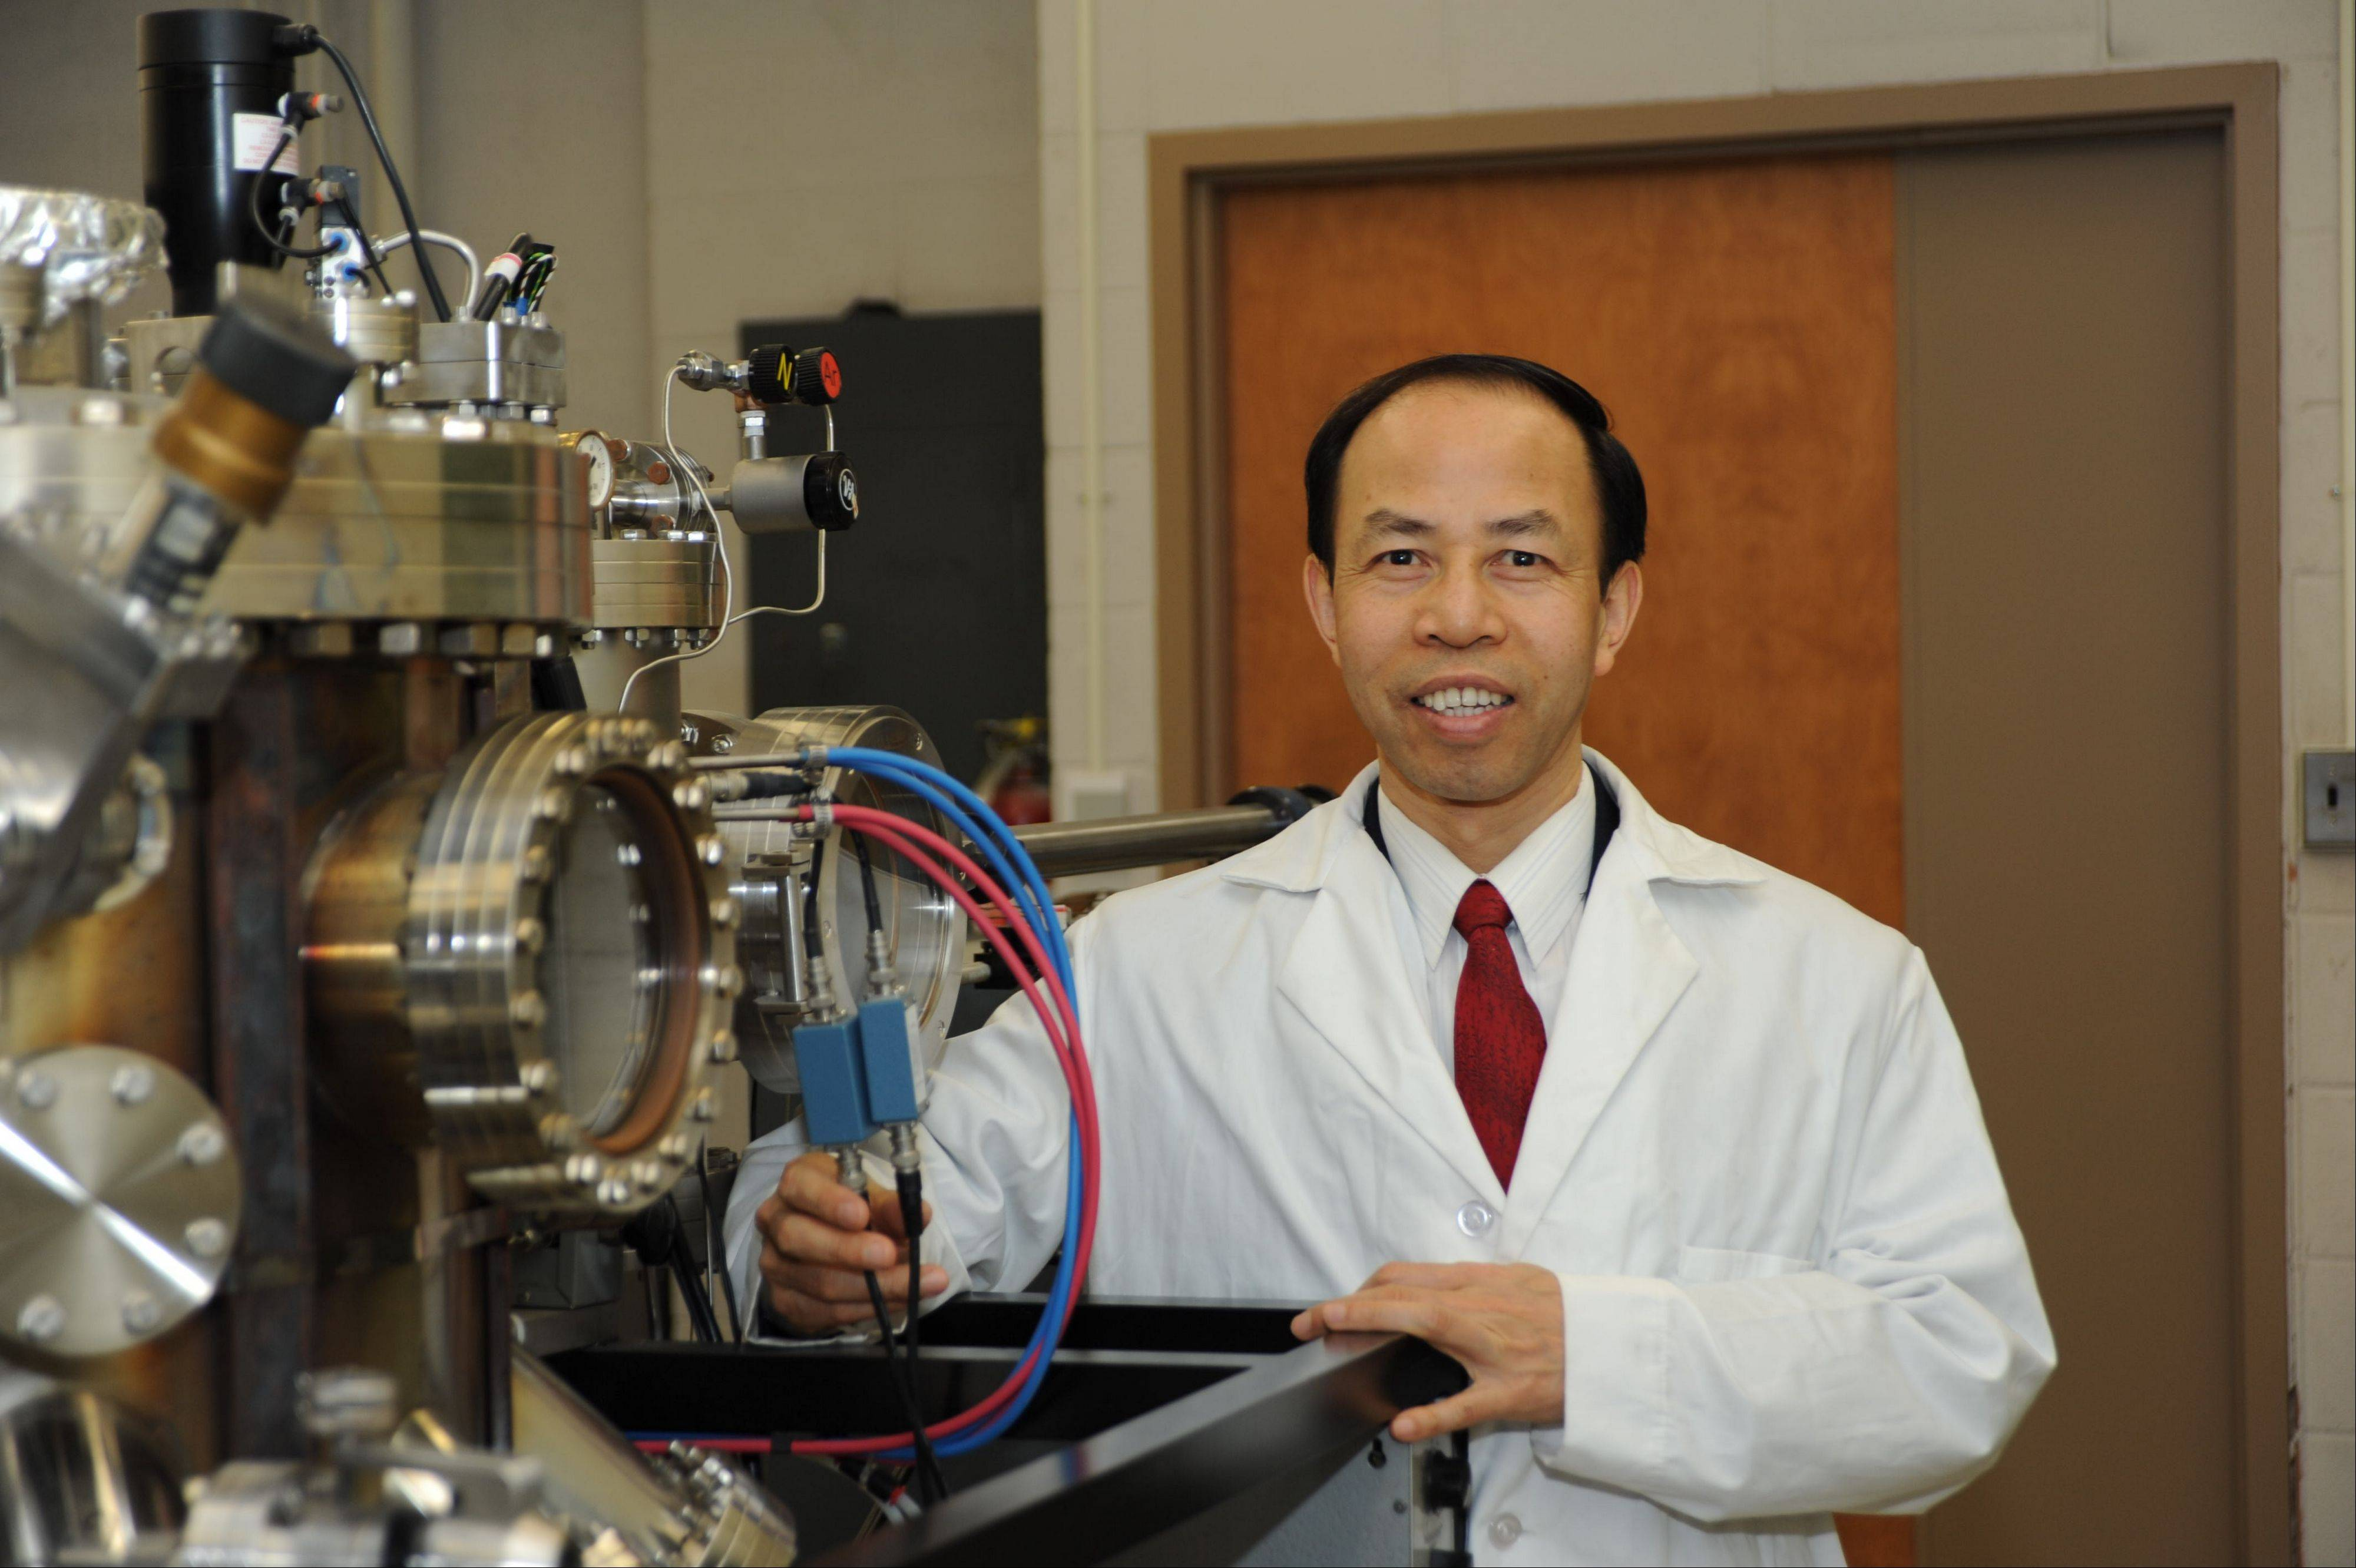 Zhili Xiao of Naperville, a physics professor at Northern Illinois University and who conducts research at Argonne National Laboratory, is one of three NIU professors honored with a Board of Trustees Professorship.